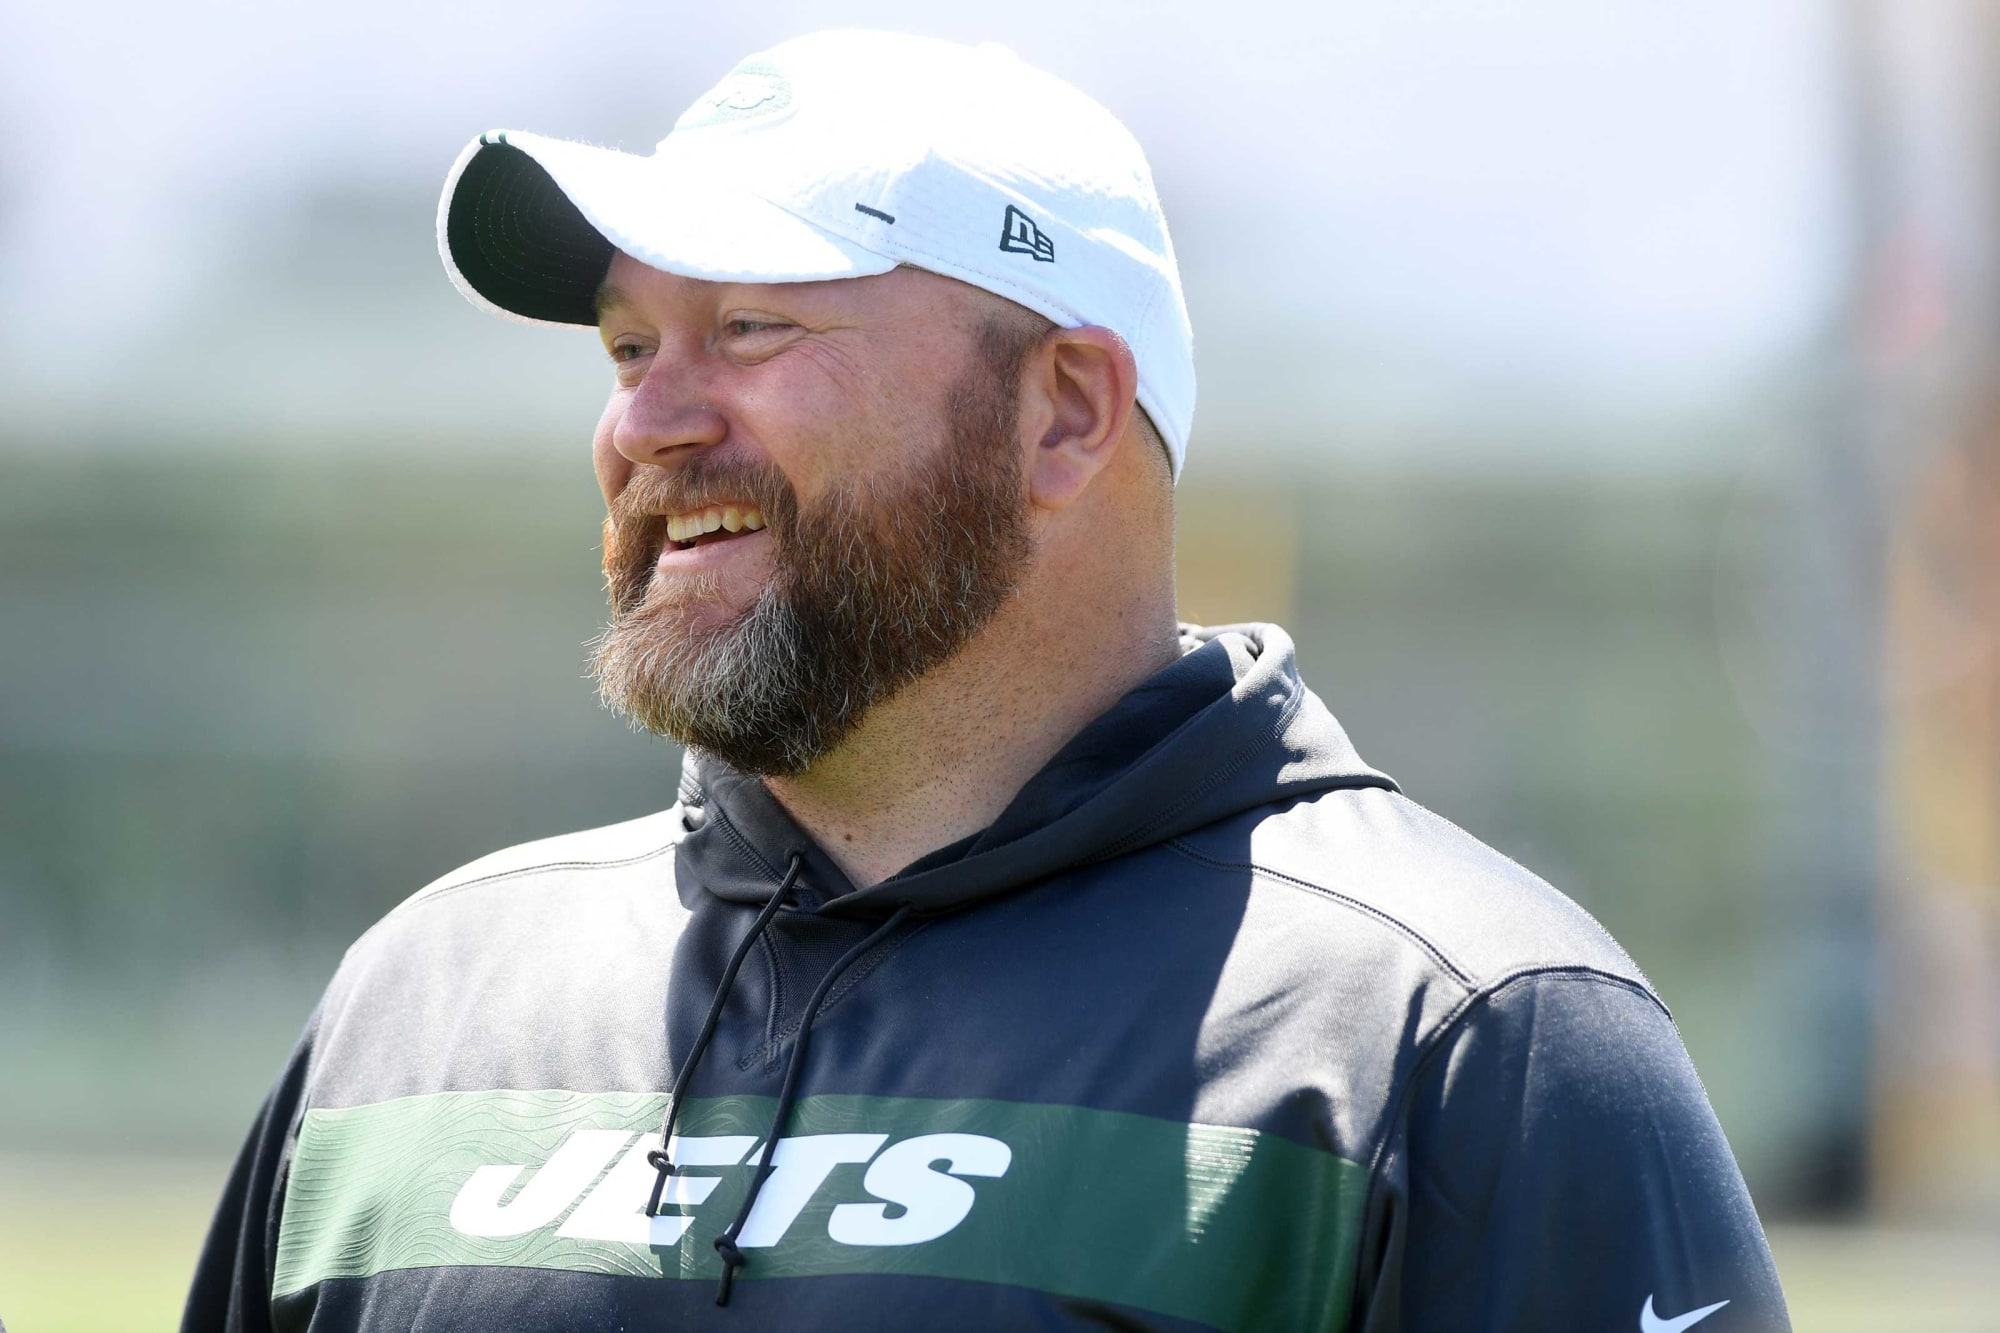 NY Jets: It's time for Joe Douglas to cash in on his draft picks